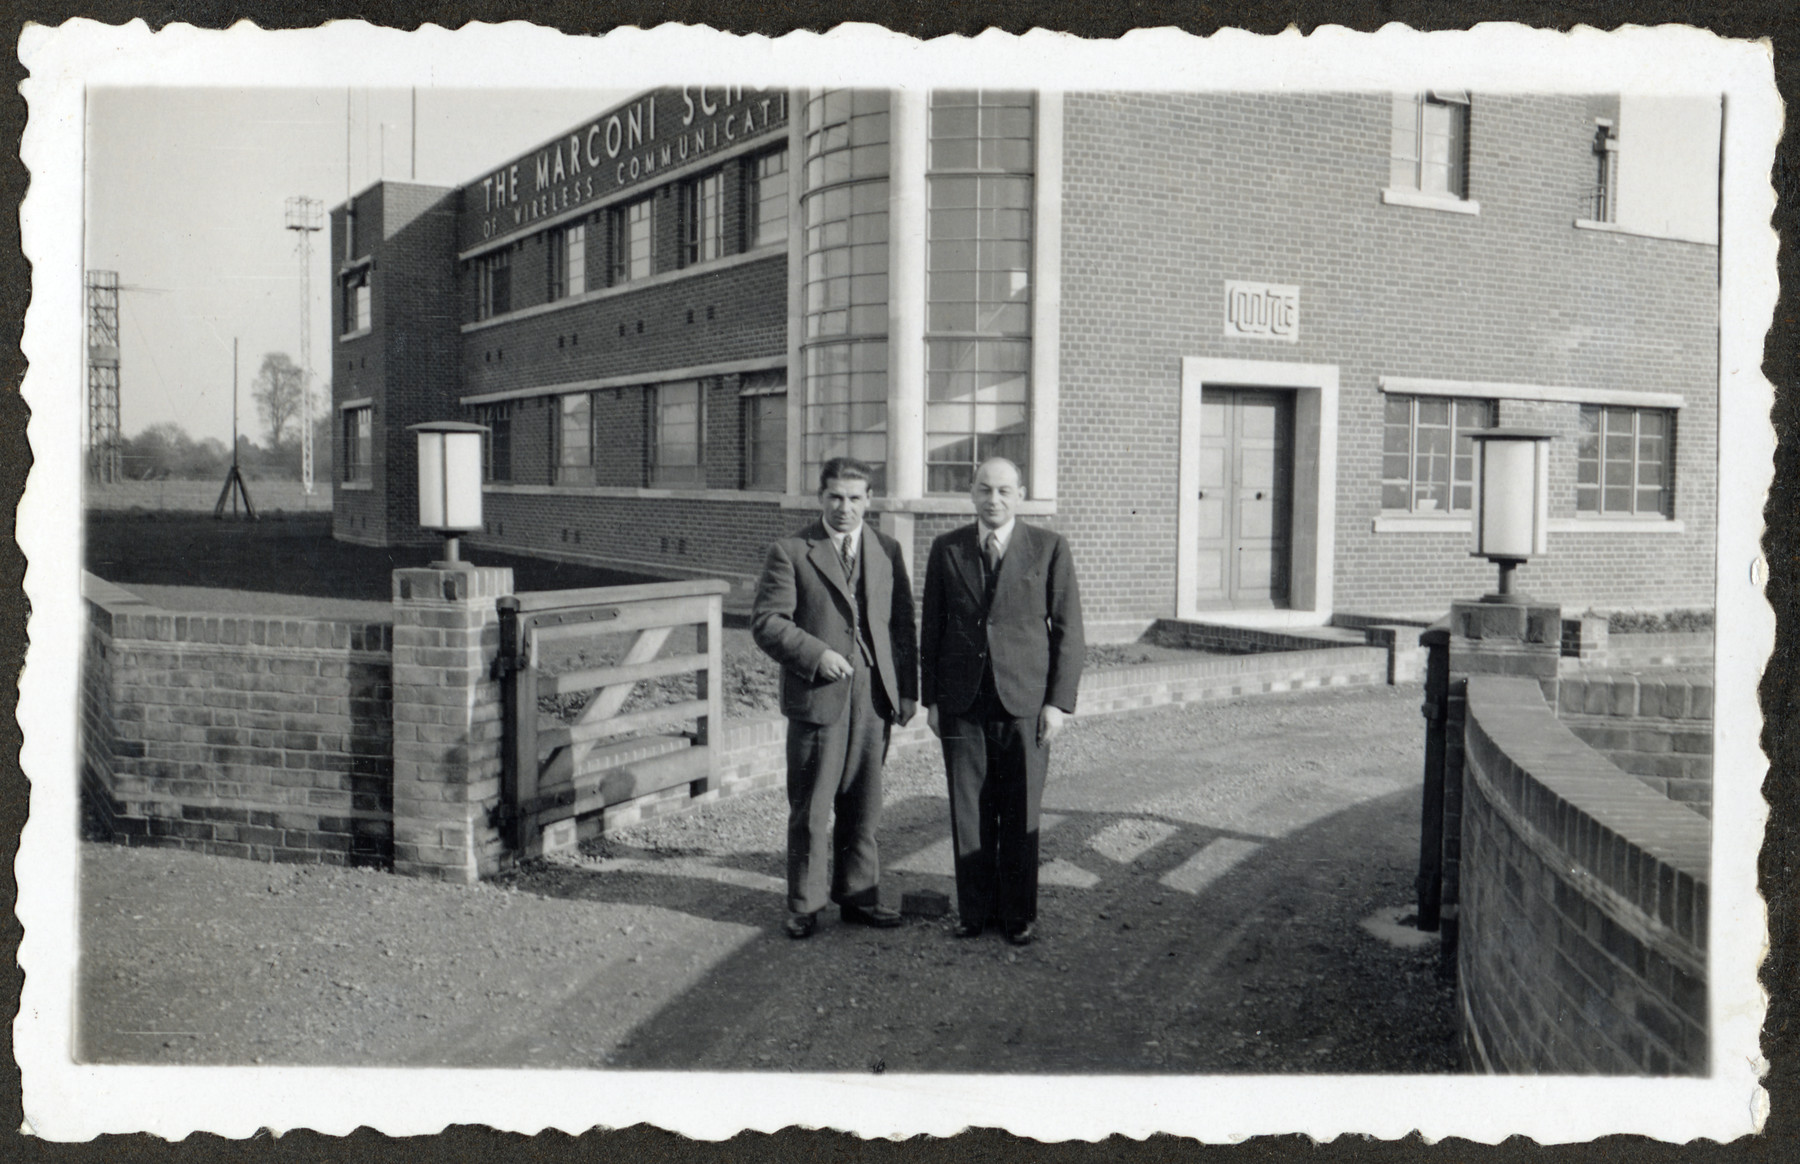 Electrical engineer and Jewish immigrant Jerzy Kent (formerly Klein) stands outside the Marconi School for Wireless Communications.